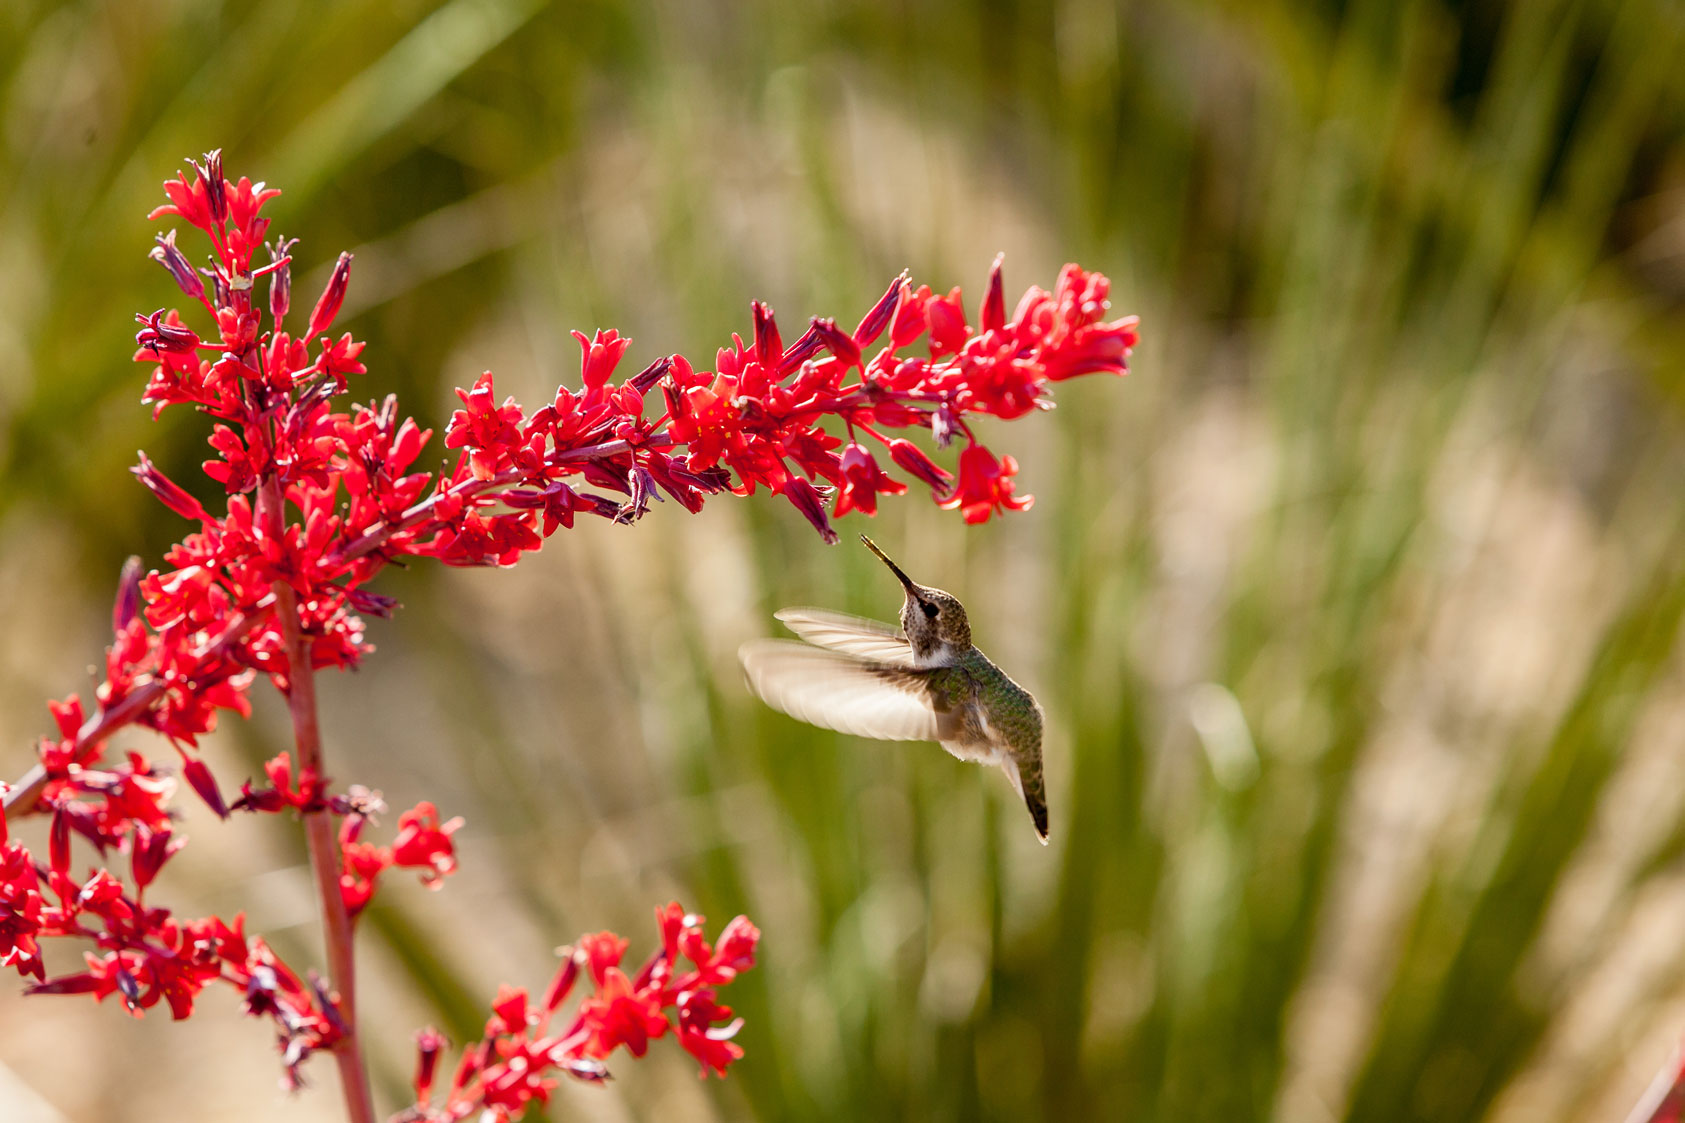 A hummingbird feeds from the flowers of the Brakelights Hesperaloe.